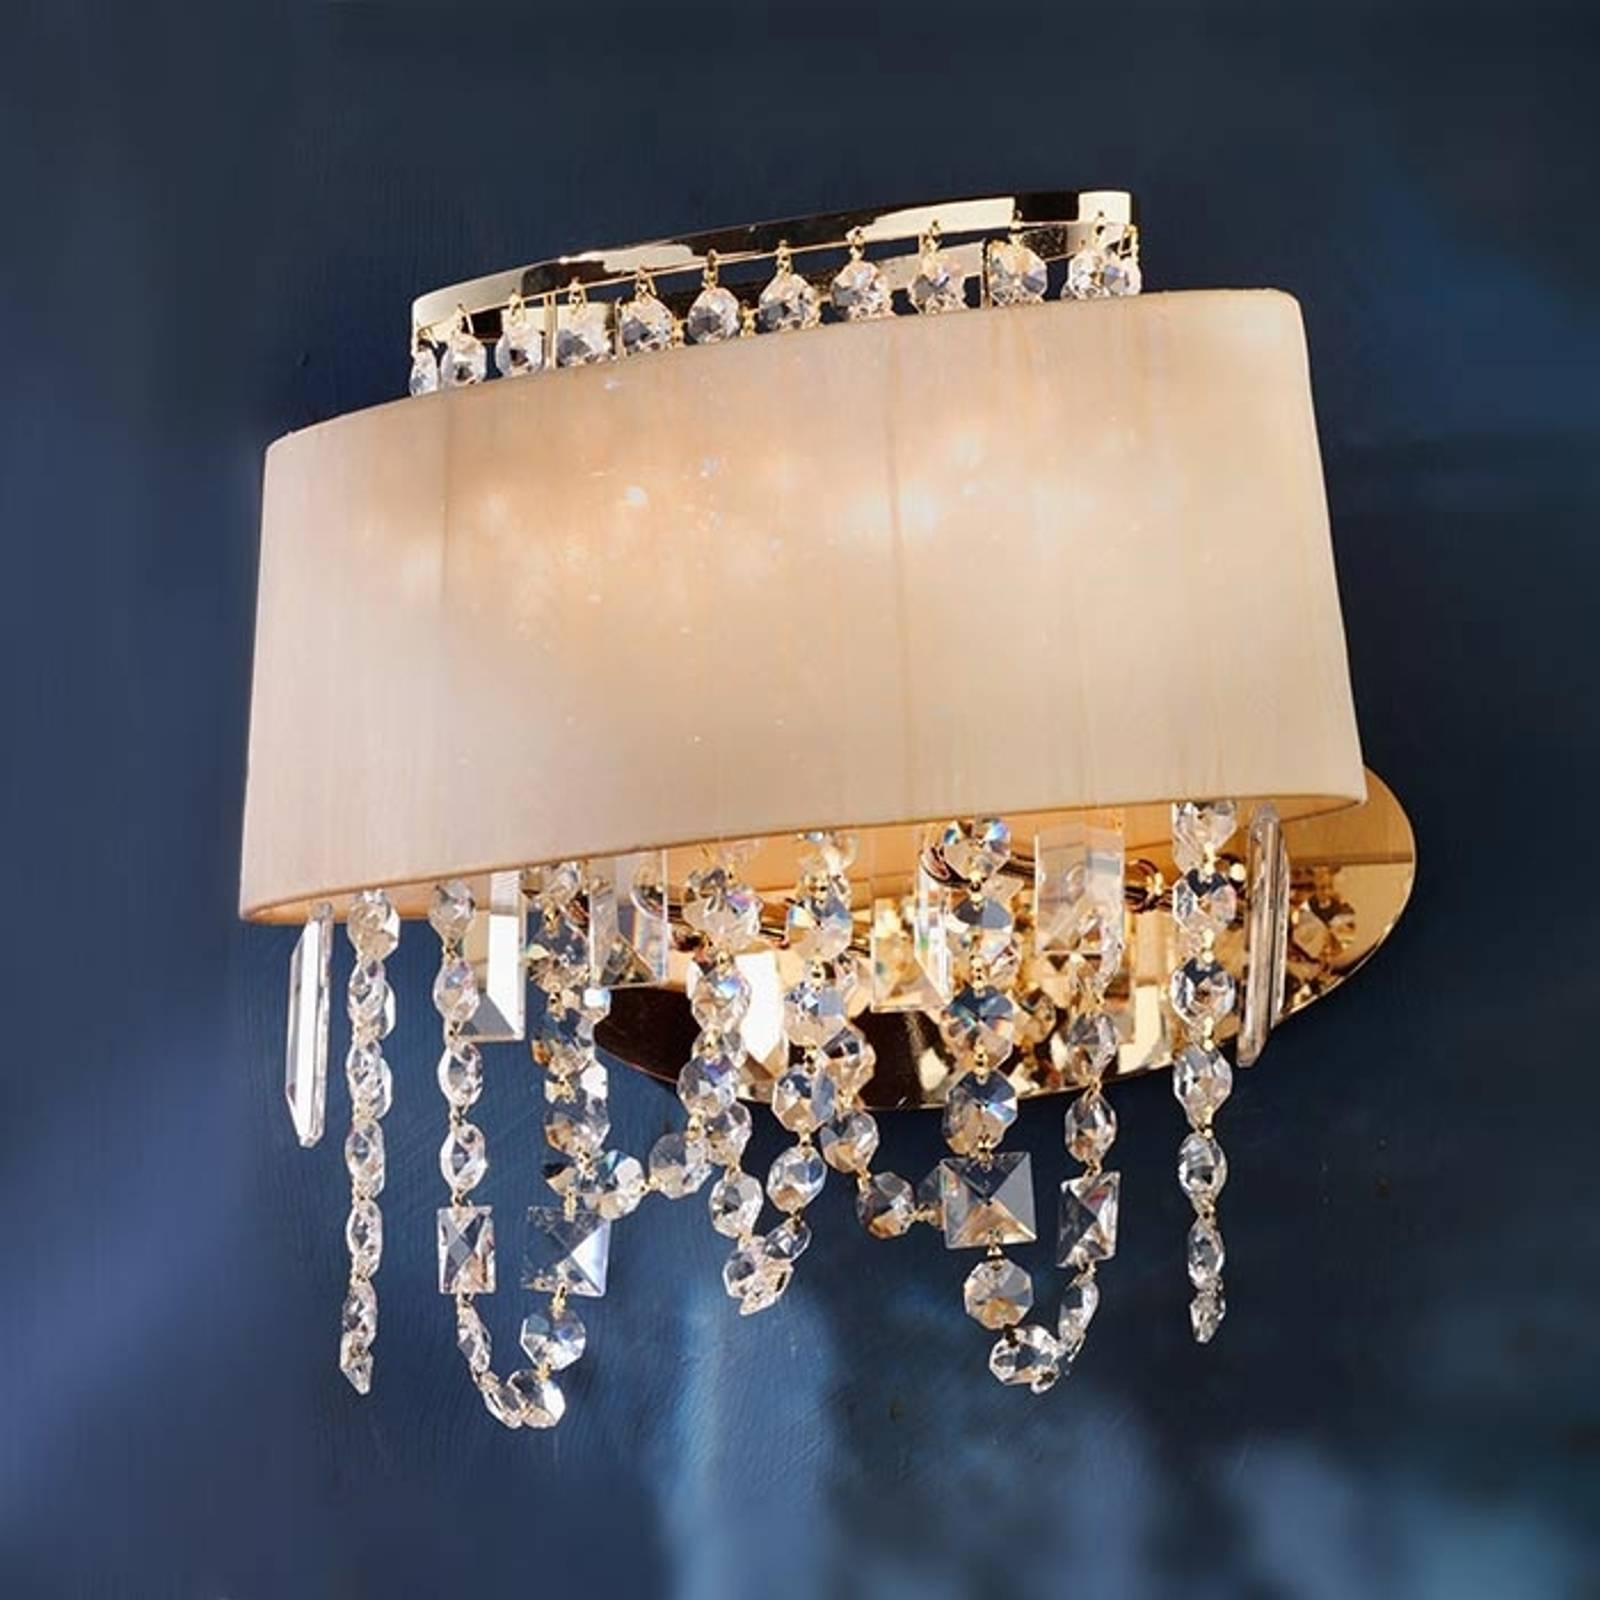 Jevana Wall Light Exclusive with Crystal Hangings from Orion